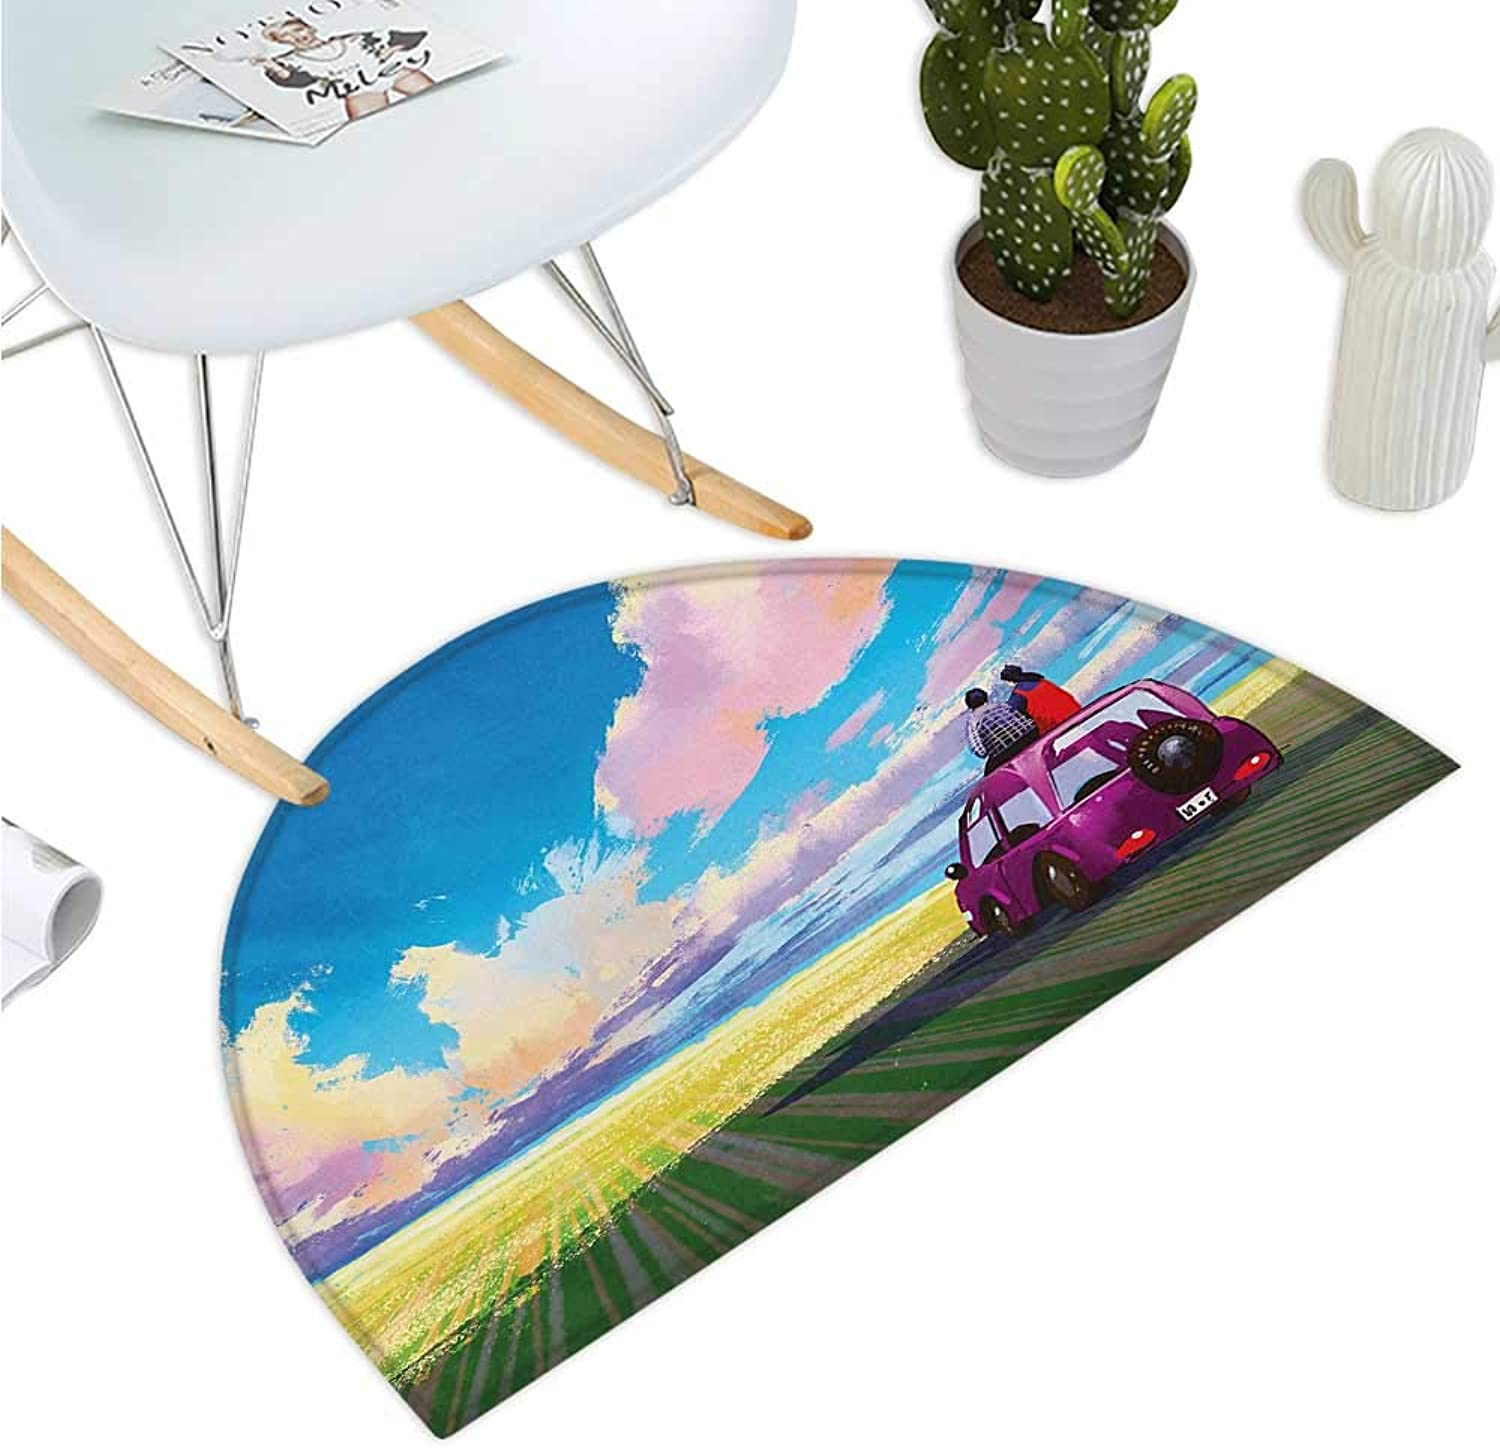 Country Semicircular Cushion Young Couple Sitting on Car in Front of Dramatic Landscape Farmhouse Soul Mates Print Halfmoon doormats H 35.4  xD 53.1  Multi